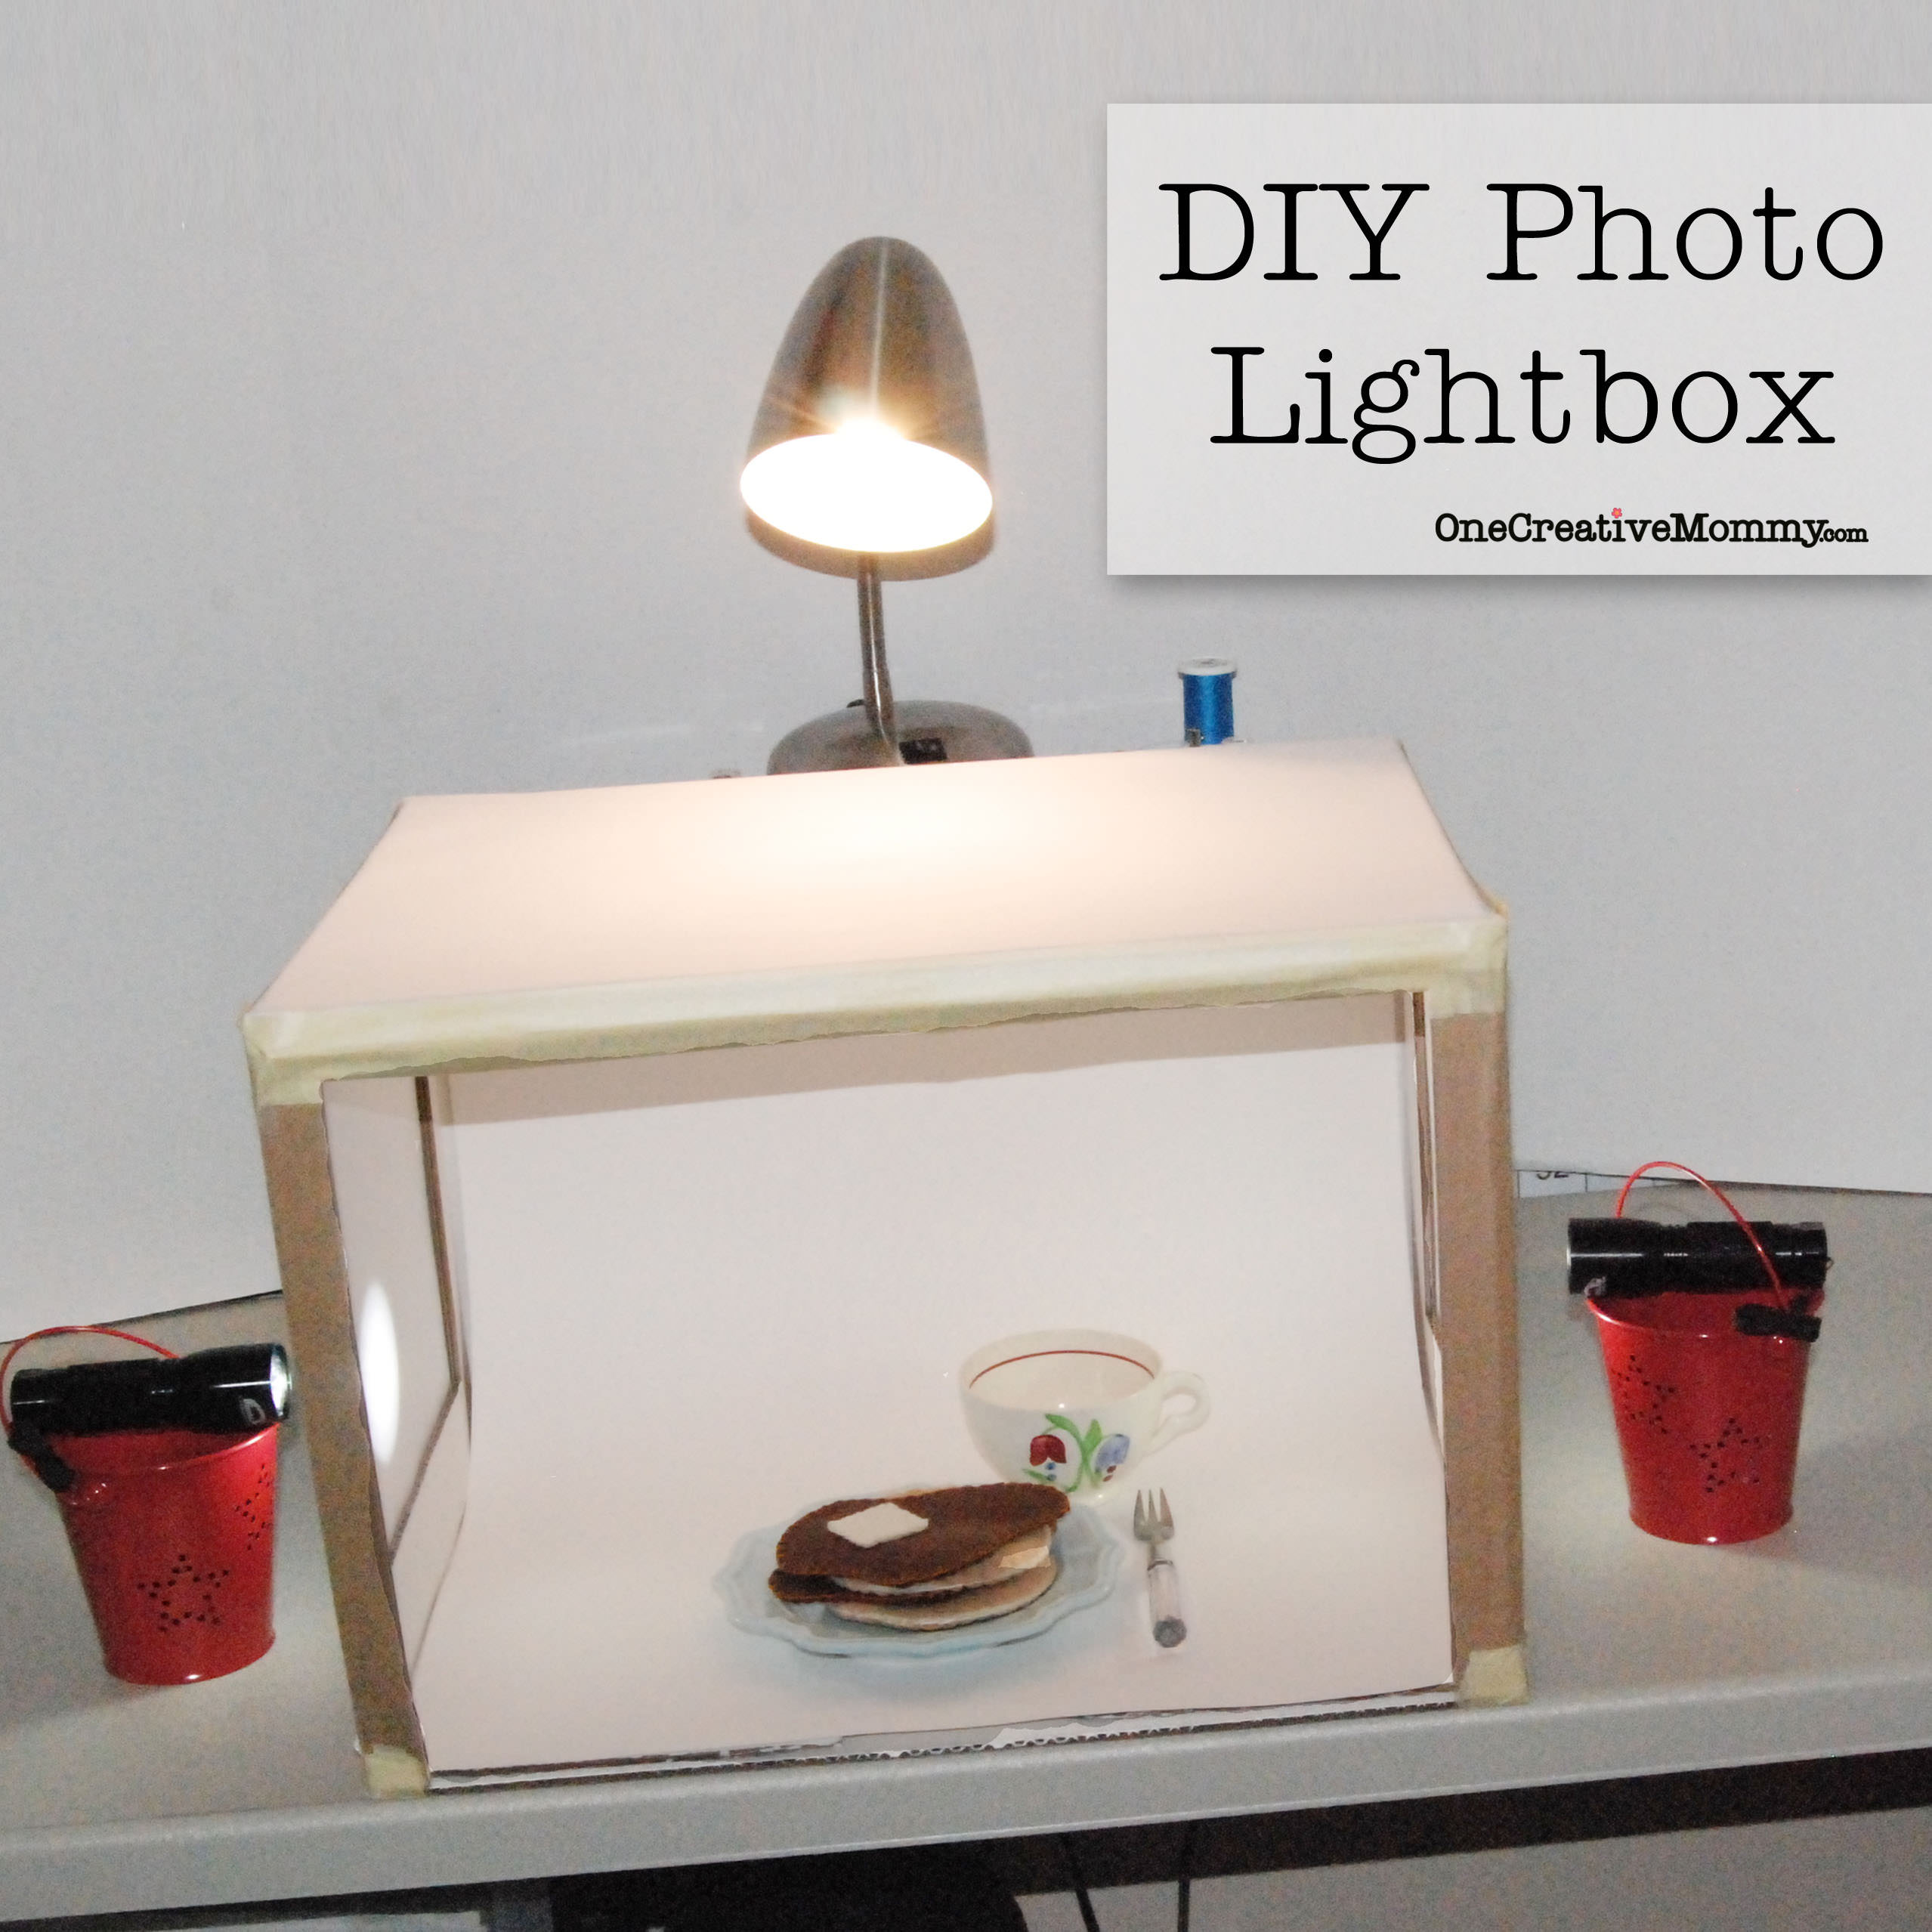 How to Make a Light Box: There are a few supplies you will need for this project. Shoebox Colored Cellophane Prisms Mirrors Popsicle Sticks Light Bulb and portable cord to attach it. How to To Make the Light Box: I covered my box in black paper just to look better, it is definitely not necessary.